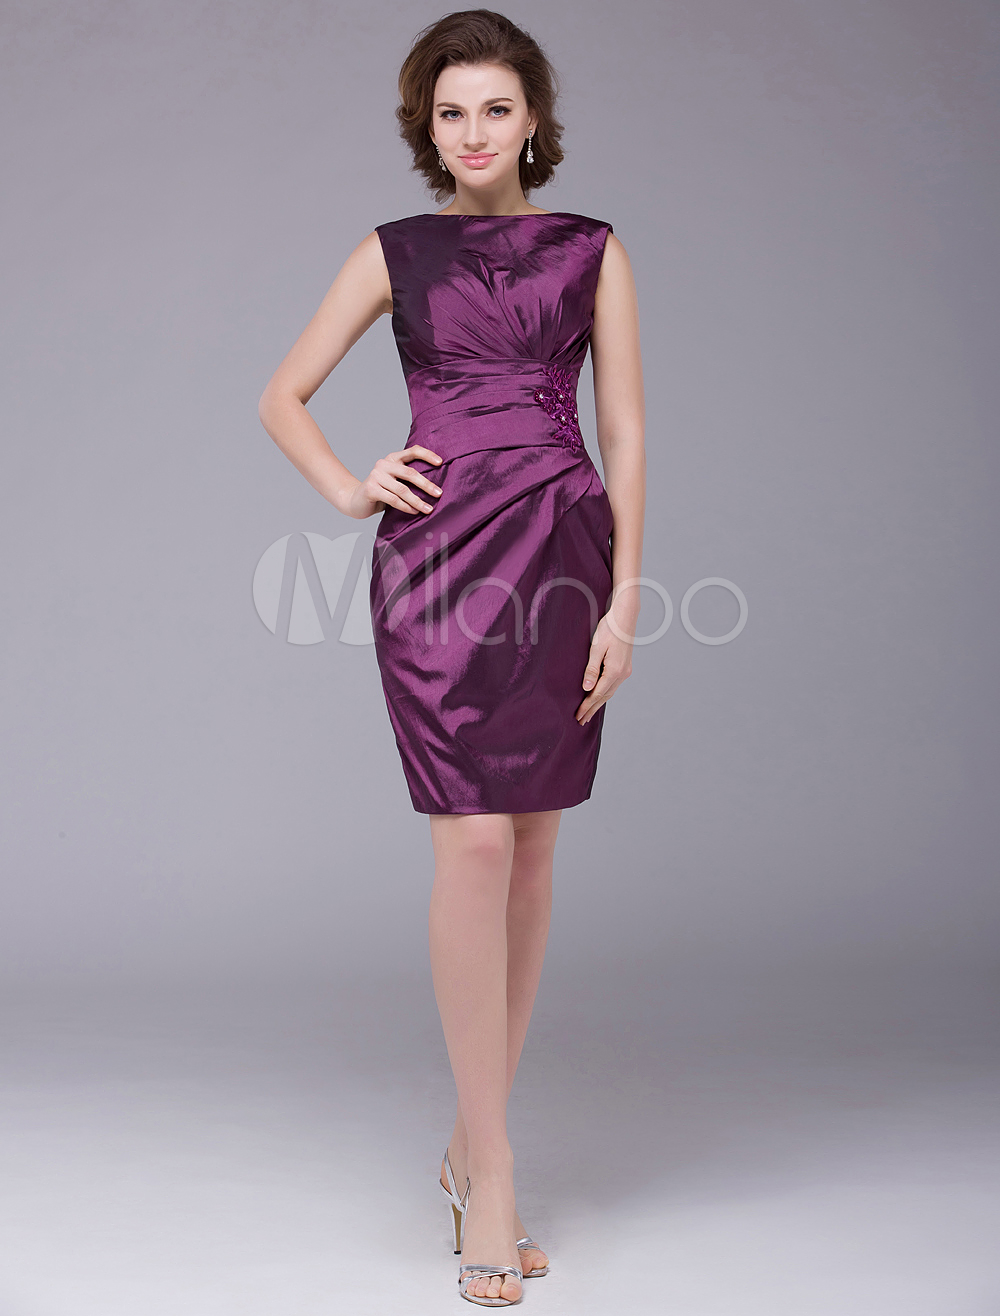 Grape Sheath Bateau Neck Pleated Taffeta Mother of the Bride Dress with Off-The-Shoulder Short Sleeves Wedding Guest Dress